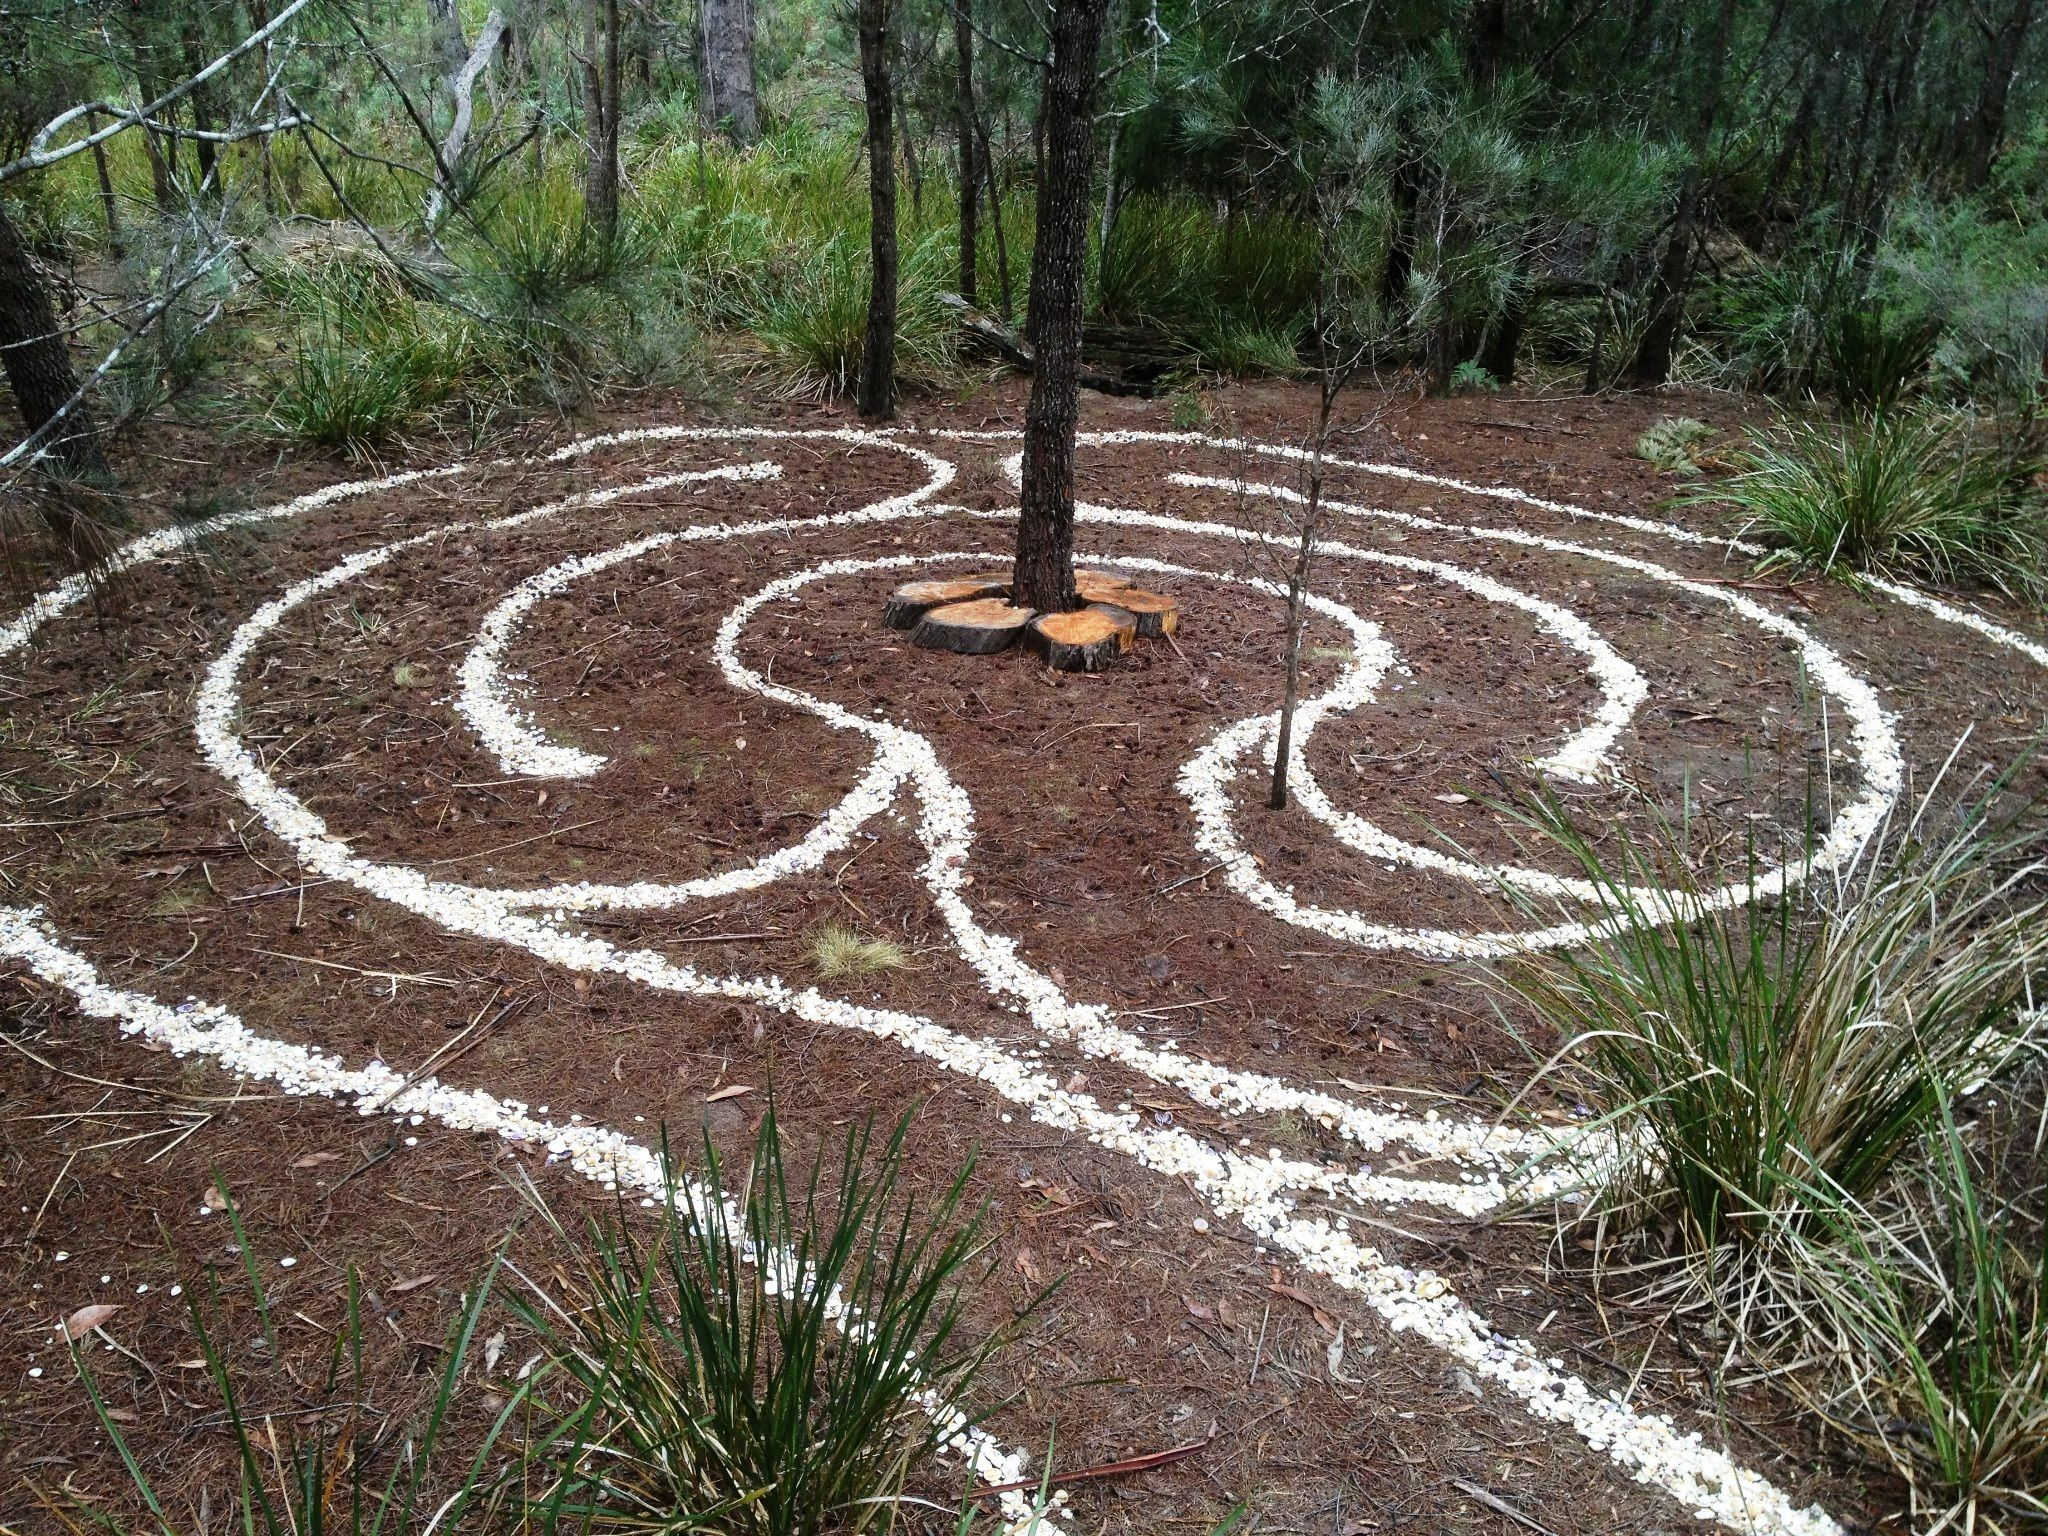 Pin By Susie Baugh On For My Garden Pinterest Labyrinth Circuit Classical From A 5circuit Chartres Maze Easy To Create This Play Space Instead Of Boring Pathway With Repurposed